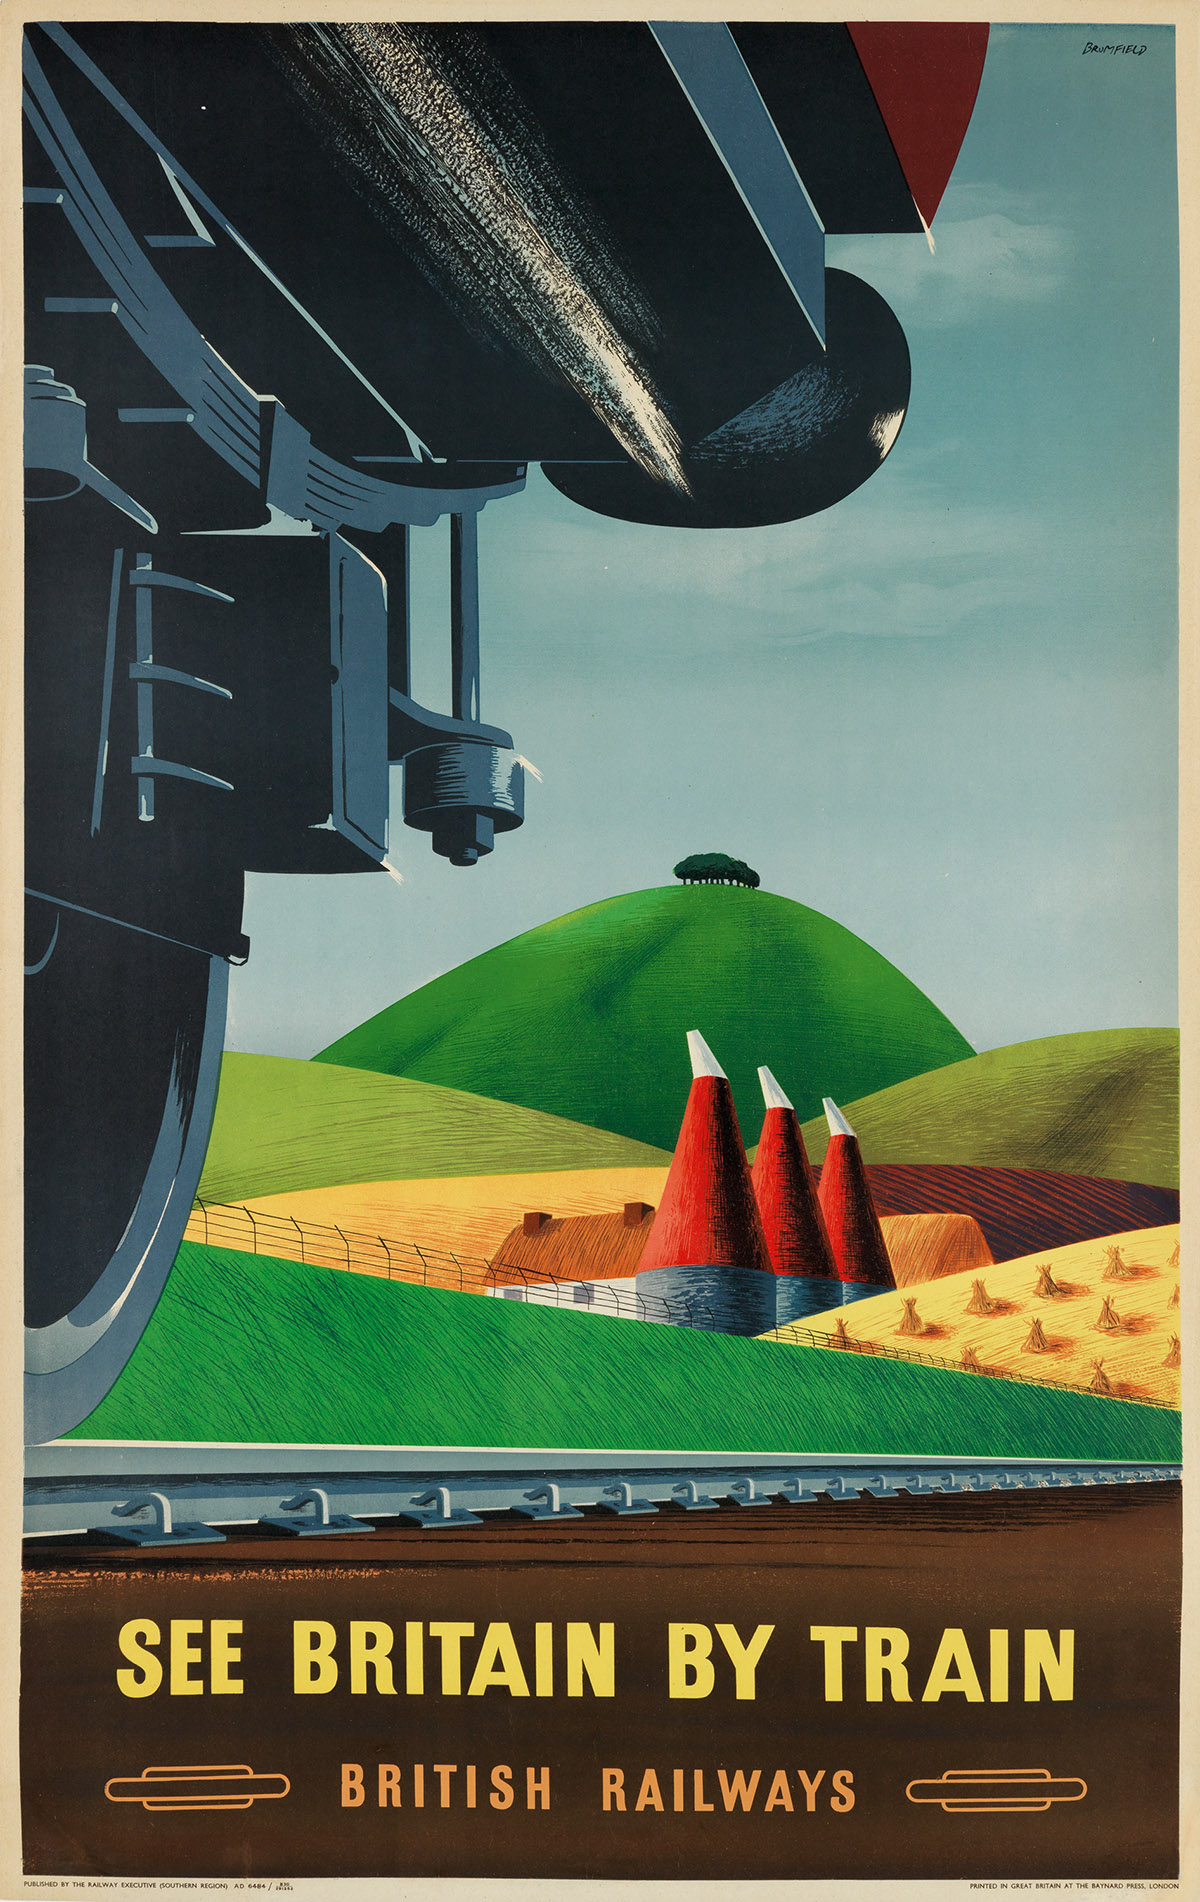 KENNETH-BROMFIELD-(DATES-UNKNOWN)-SEE-BRITAIN-BY-TRAIN-Circa